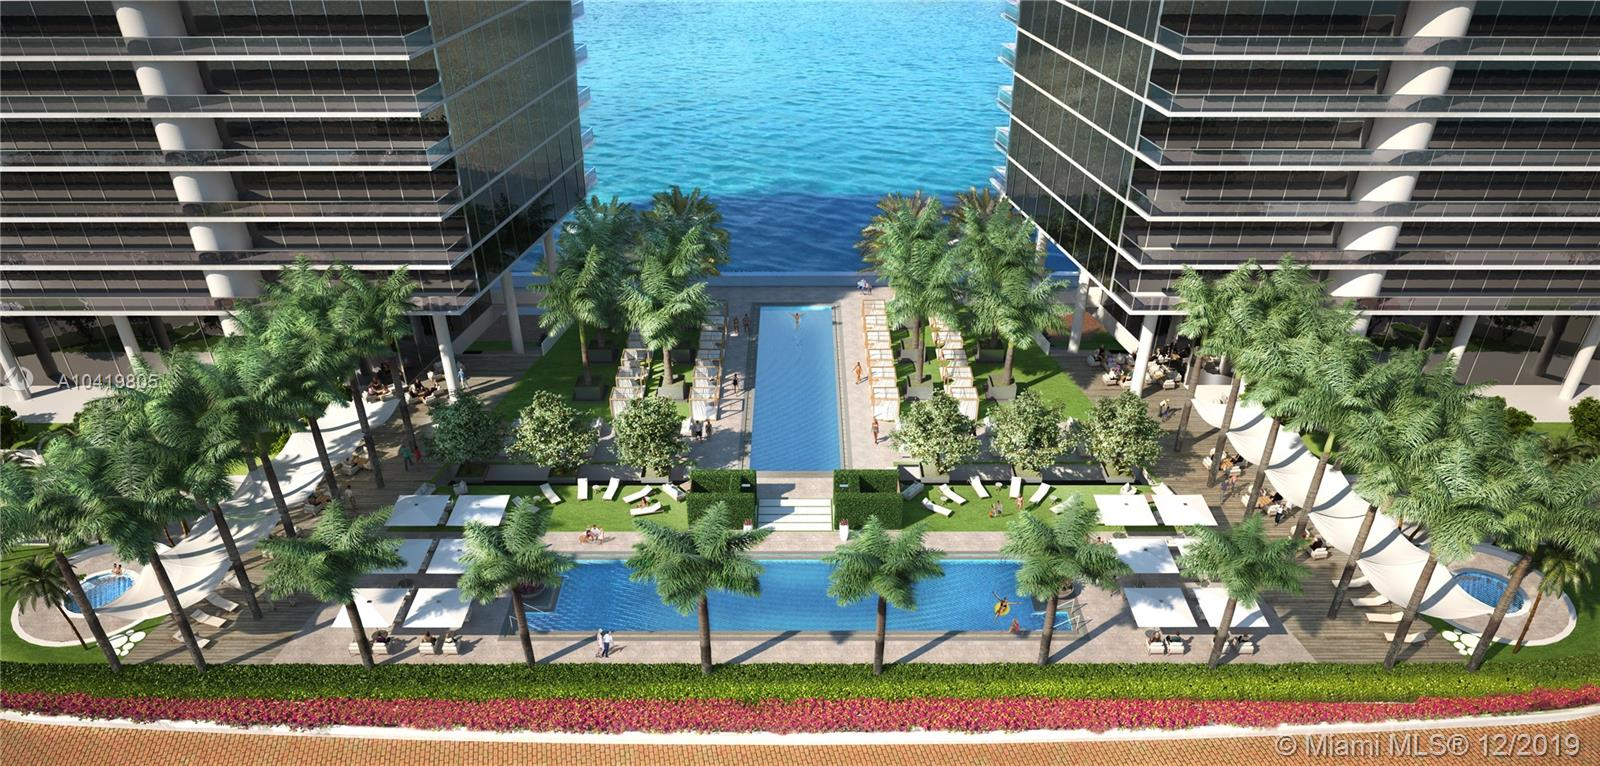 This is a developer owned unit. Extra parking, extra storage, private garages, marina slips, guest suites, hobby rooms are only available by purchasing through developer.Not available with resales unless they have already.We also have other residences available that are not listed.Many other advantages of purchasing direct.Call for details6,200 sq/ft (AC) and 4,777 sq/ft of terrace, 24x10 swimming pool, 2 summer grills, 12-17ft ceilings, 3 assigned parking spaces, Amenities include: private gatehouse entry, full time concierge, 10,000 sq/ft of gym/spa, ,marina, pier, 2 pools, restaurant, Wine Cellar, Cigar Room, Social Rooms, teenage room, Guest Suites, Caterers Kitchen with Private dining room and MORE!!!